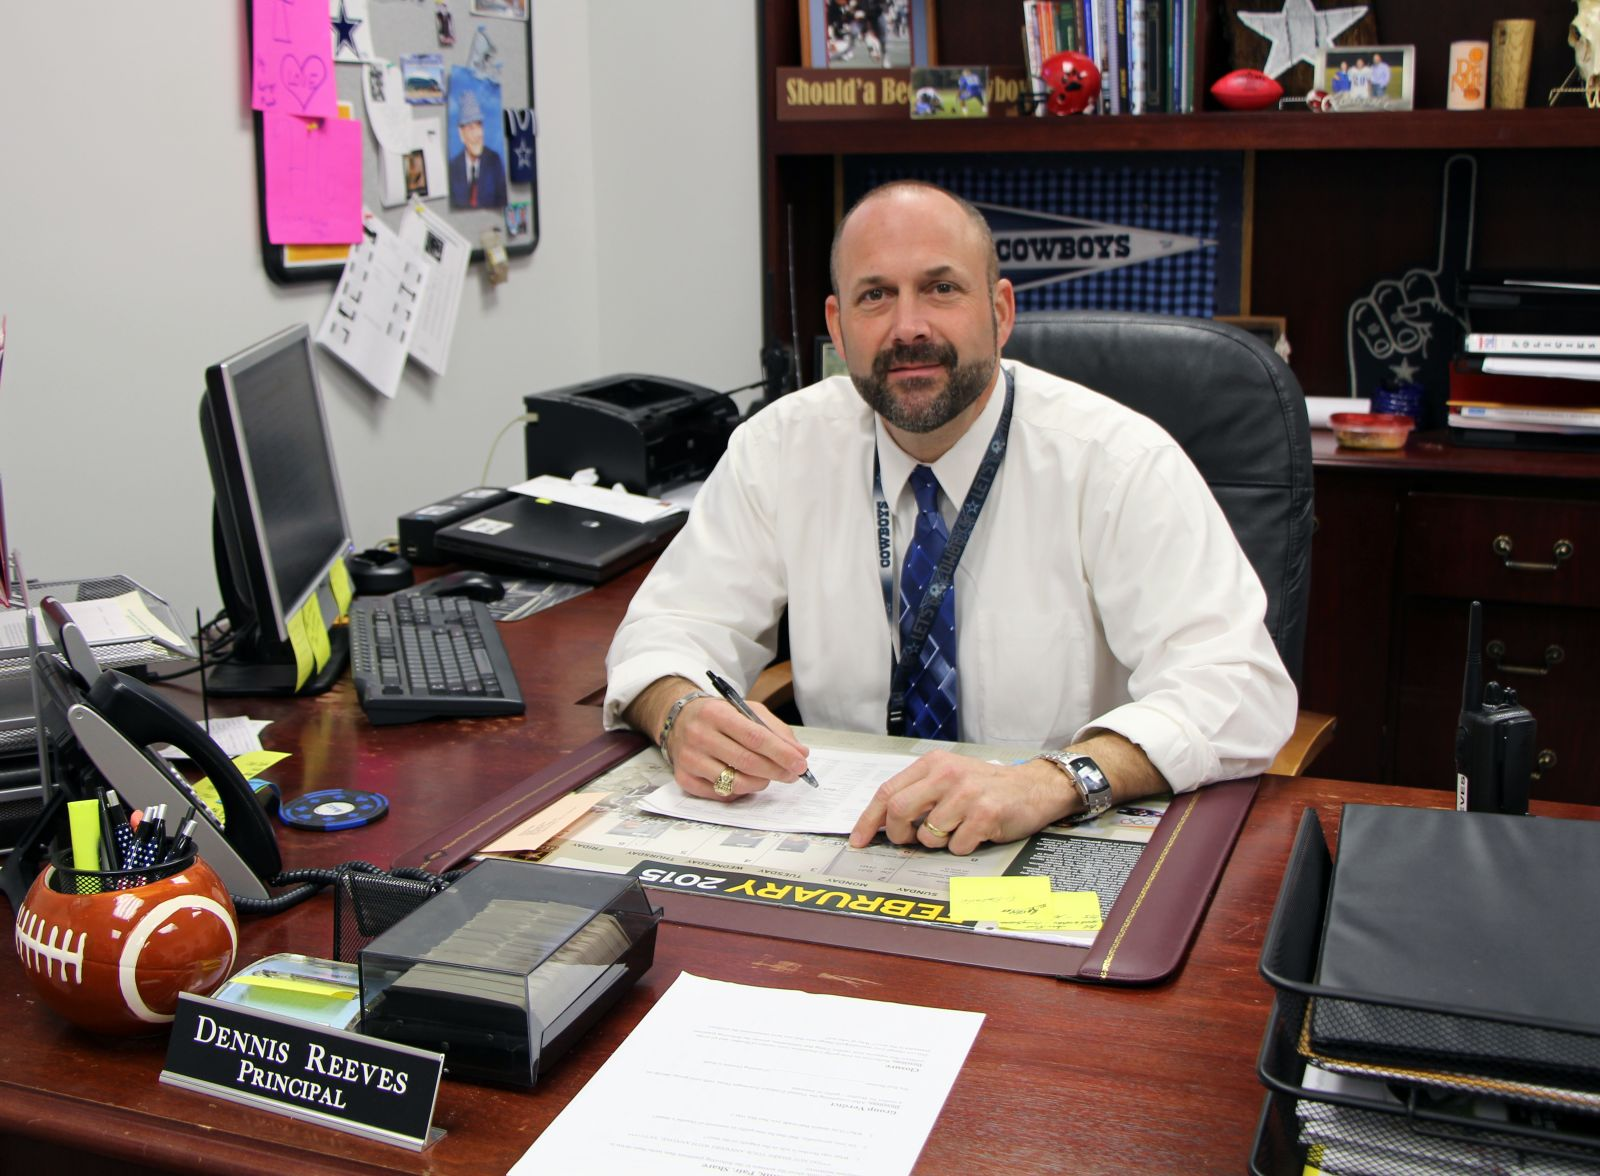 Coroner releases autopsy findings in mysterious Texas high school principal shooting death